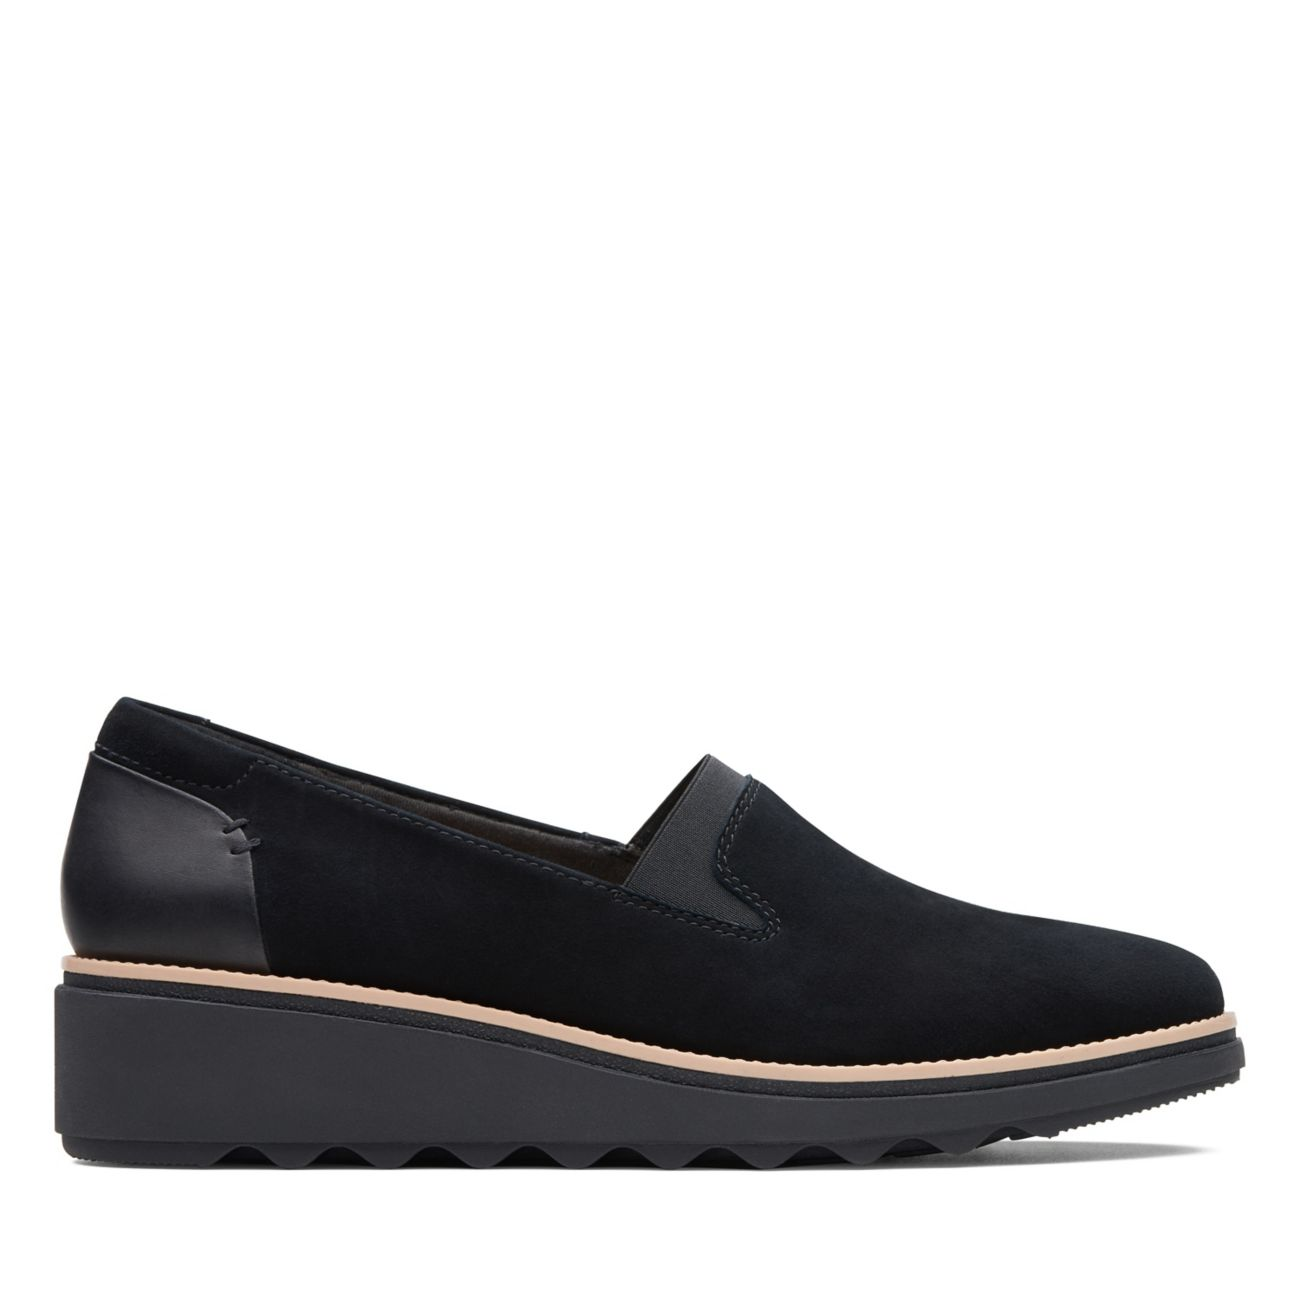 Black Suede Clarks® Sharon Shoes Official 0xop8nkw Dolly Women's WD9YEIH2